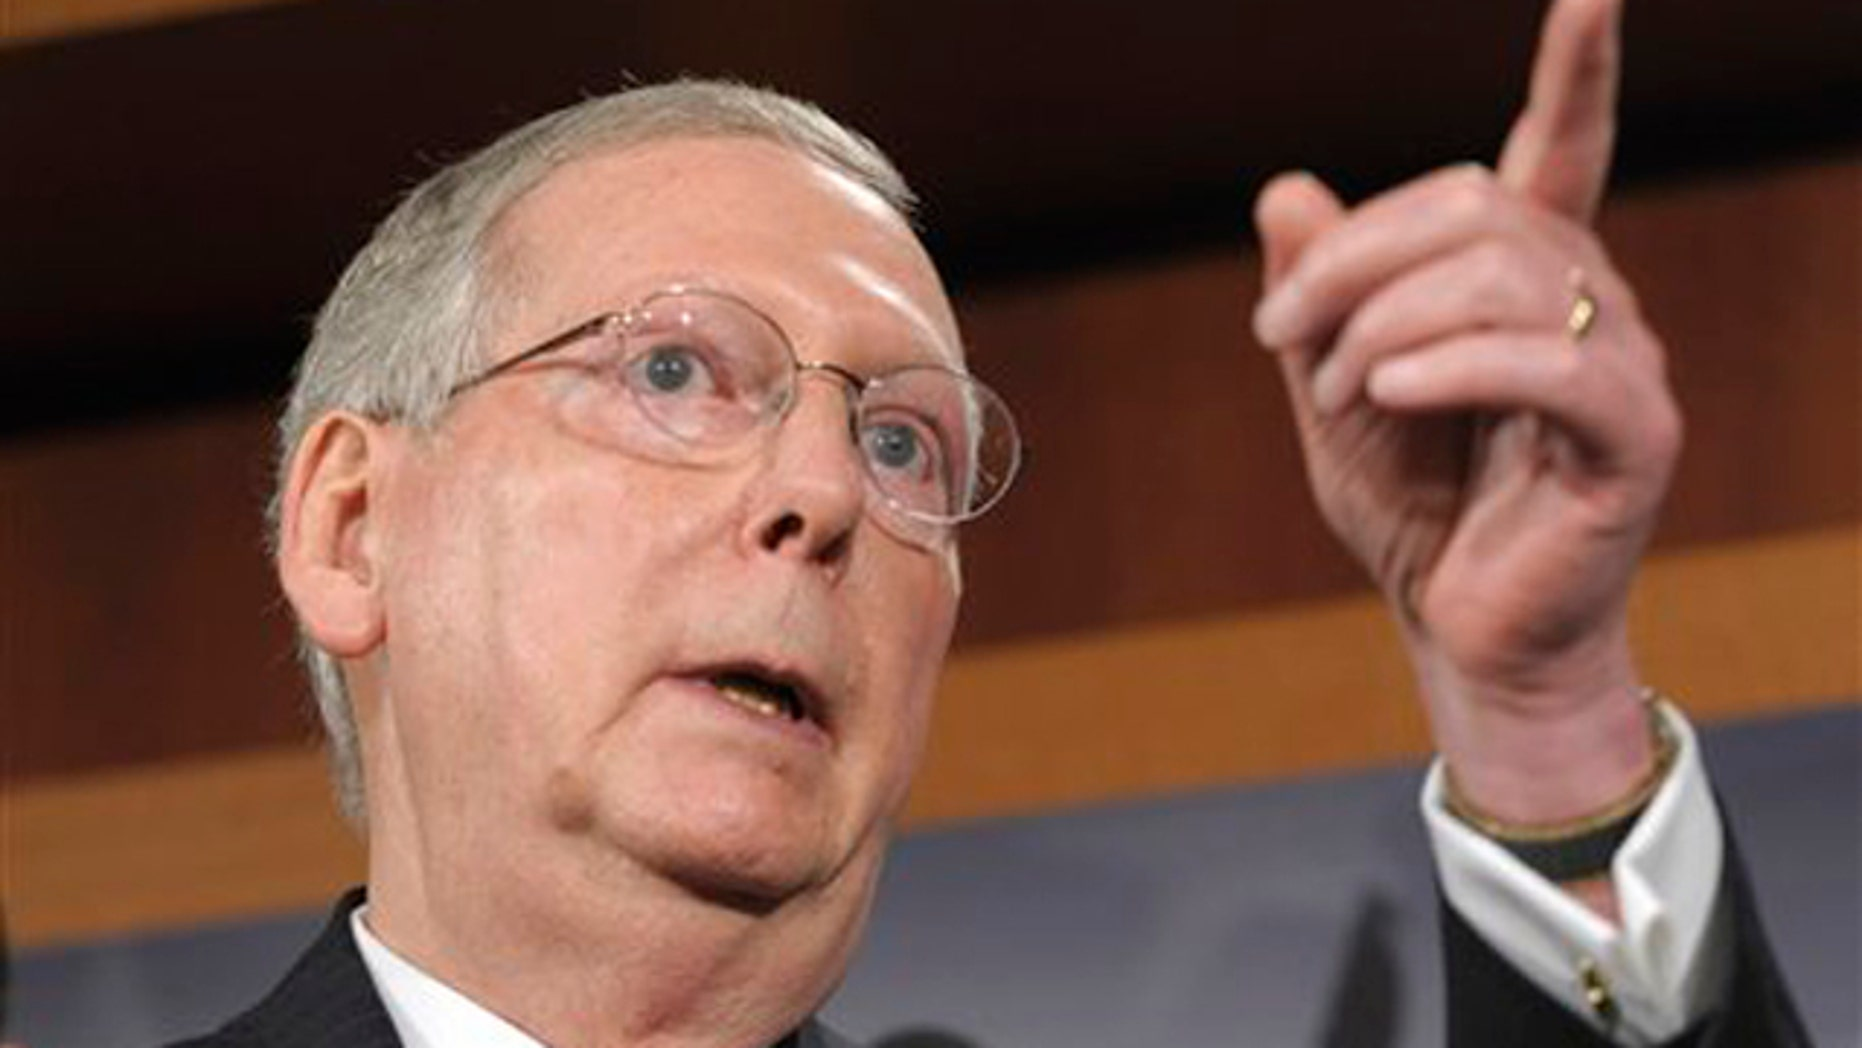 July 12: Senate Minority Leader Mitch McConnell gestures during a news conference on Capitol Hill.